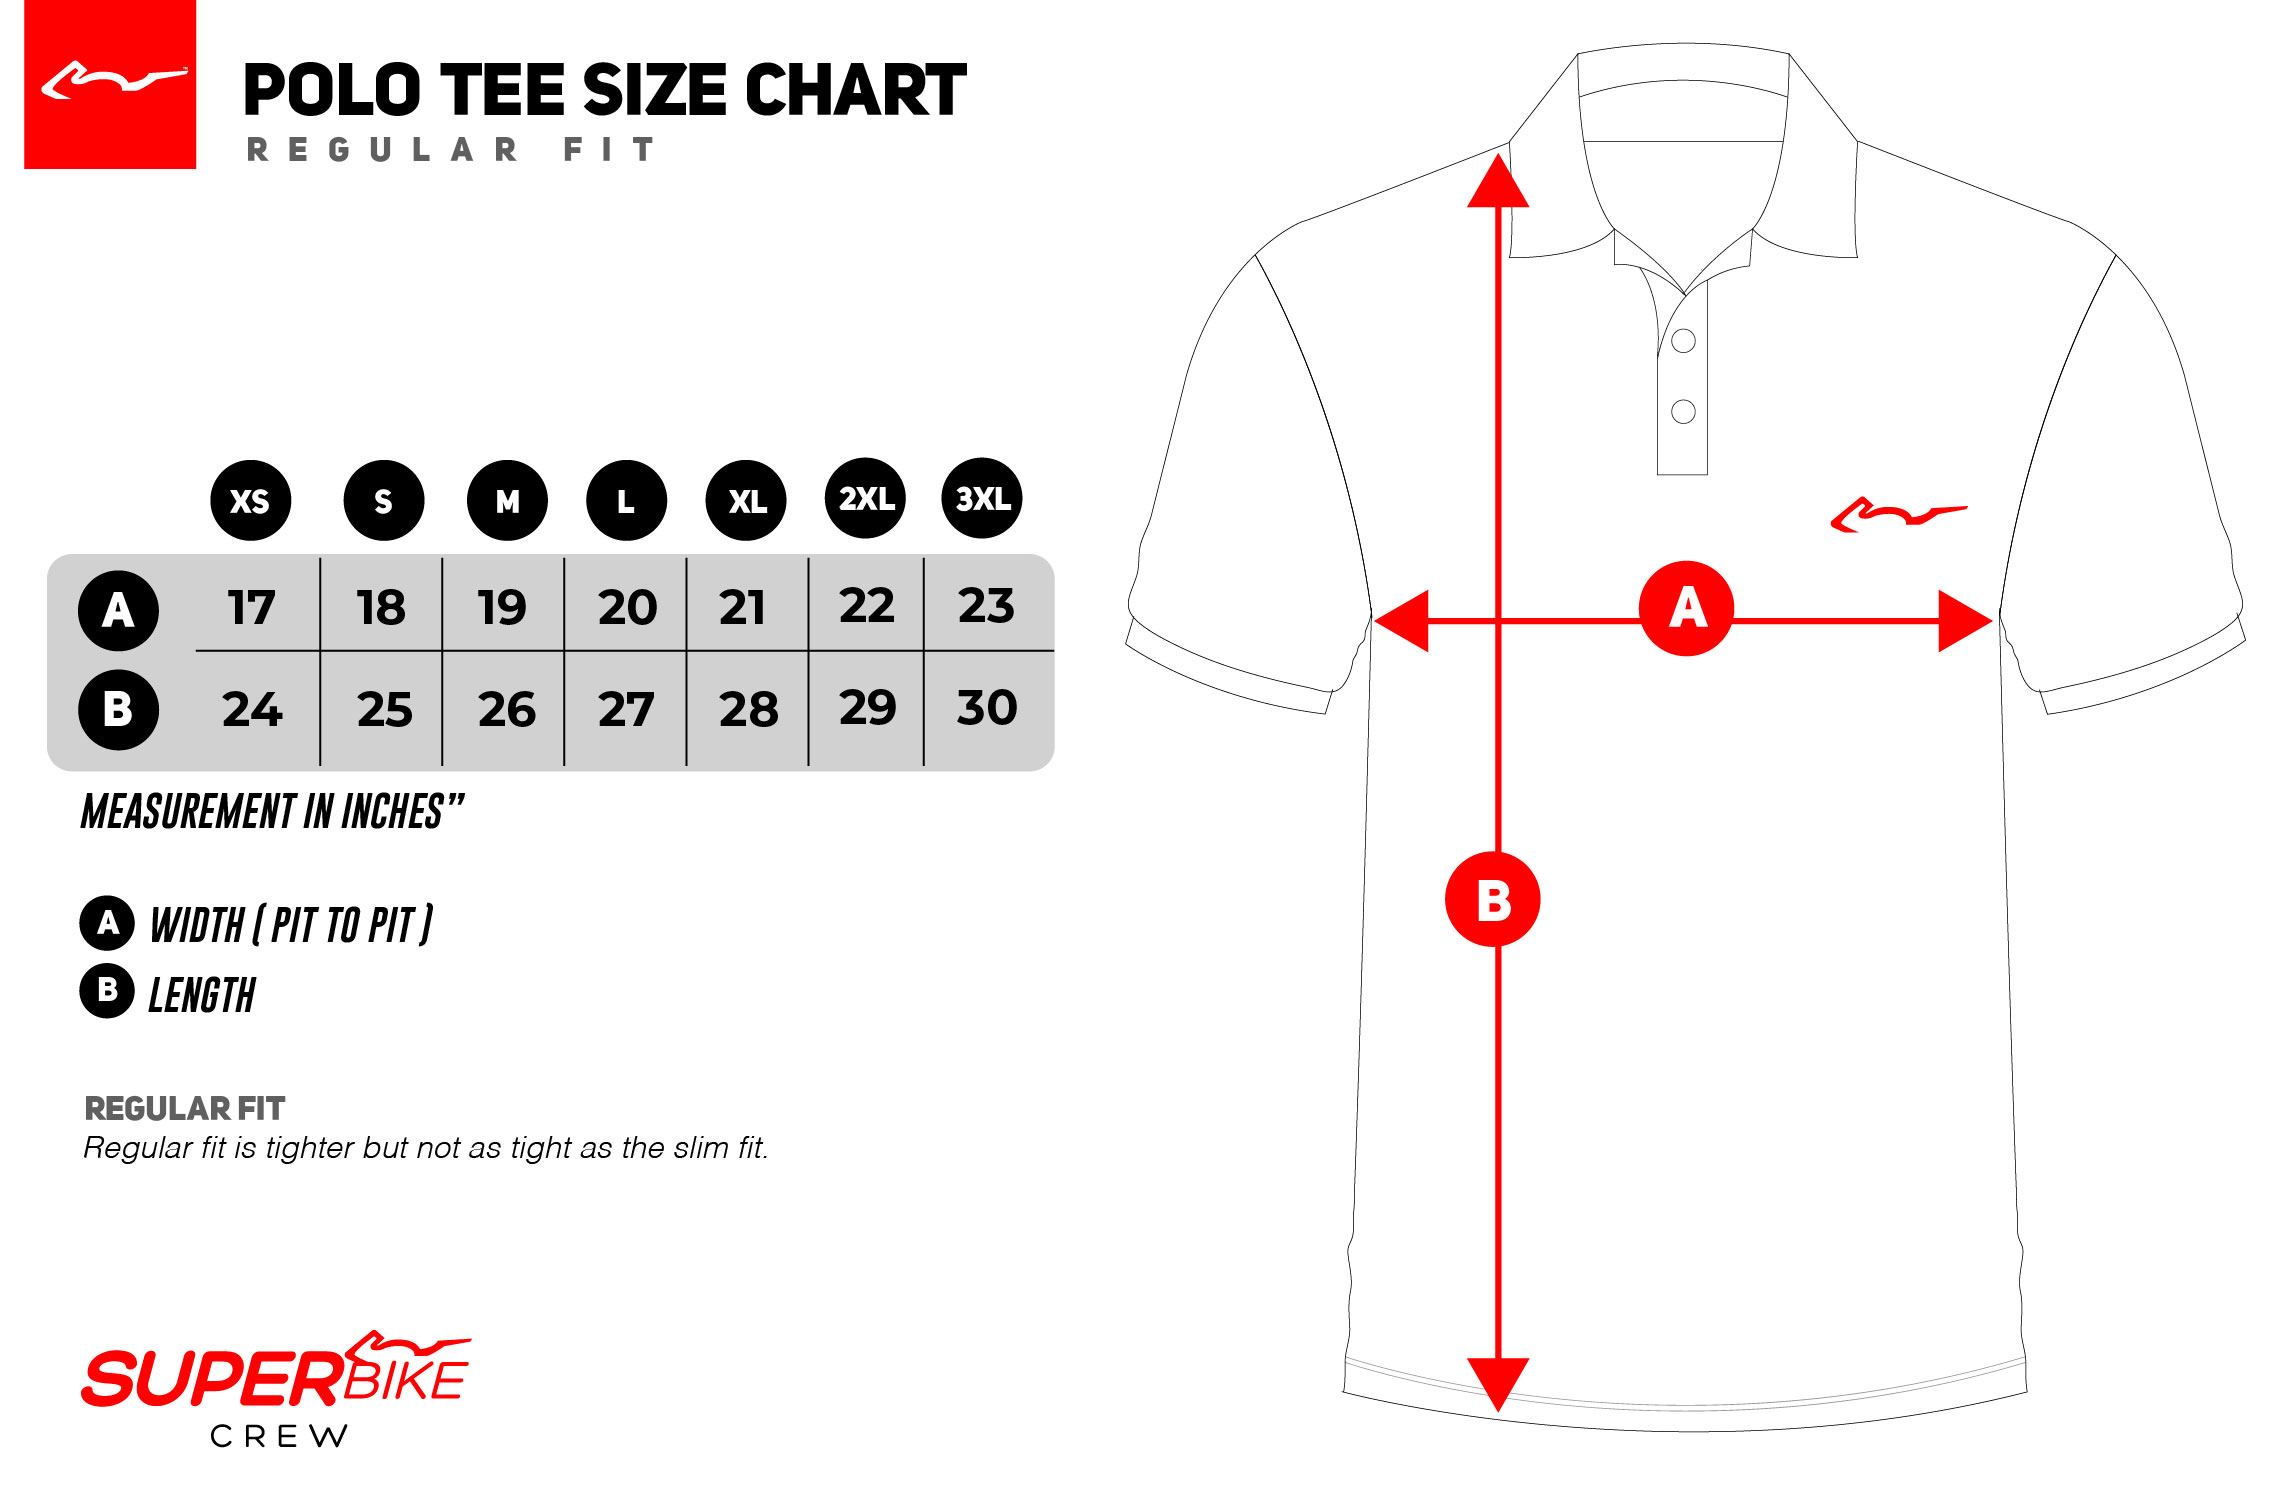 SIZE CHART-REGULAR FIT-POLO--01.jpg